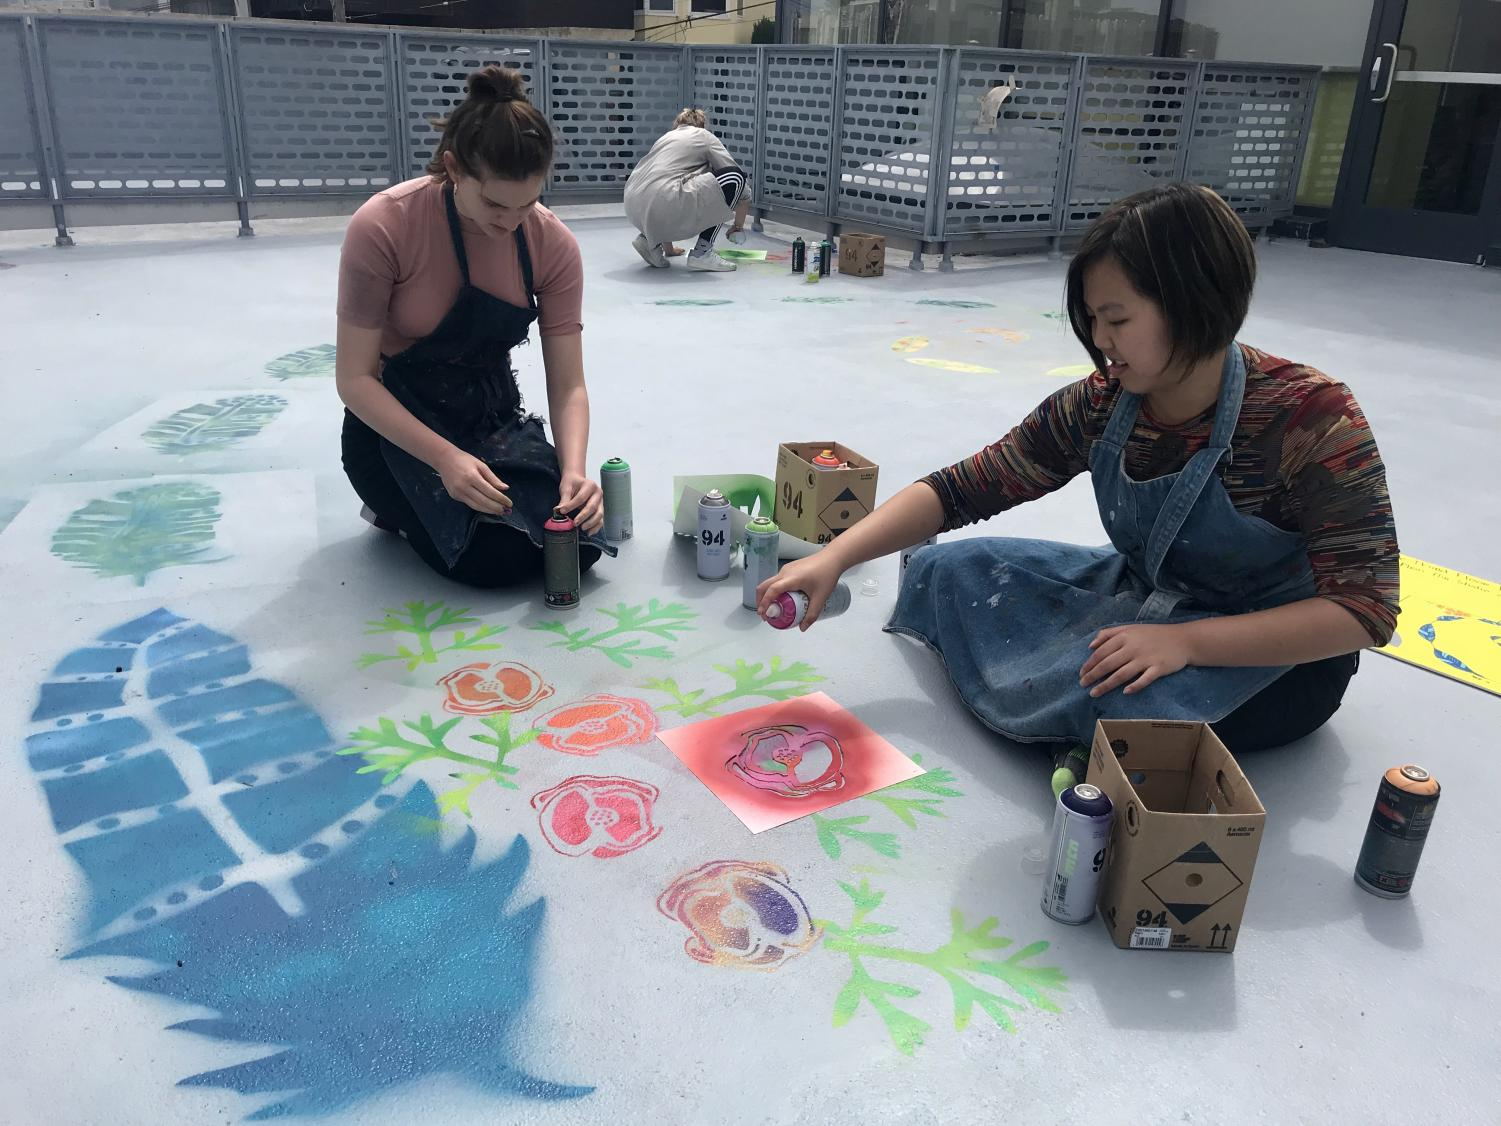 Sophomores Cat Webb-Purkis and Abby Widjanarko spray paint California poppies and bald eagle feathers on the art terrance floor. The mural incorporates all elements of STEAM.